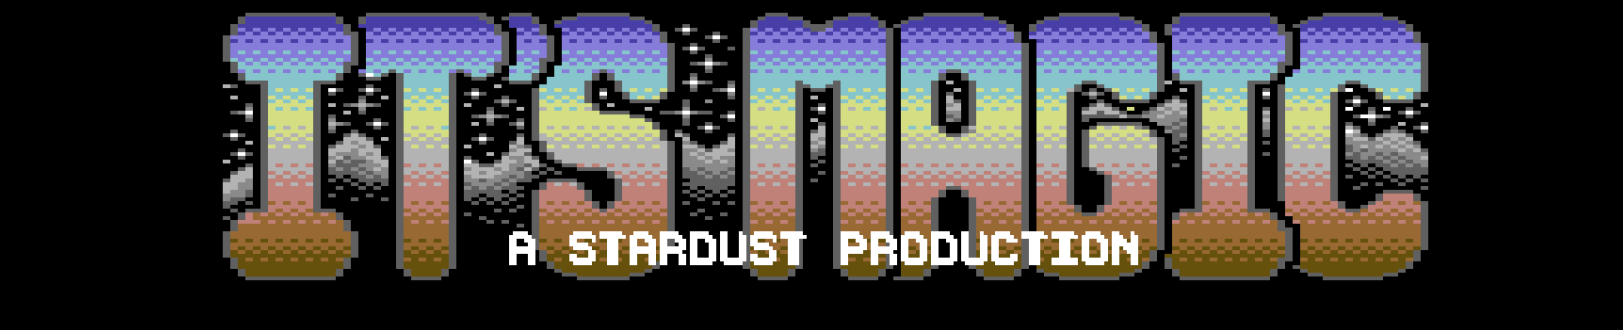 It's Magic (C64)